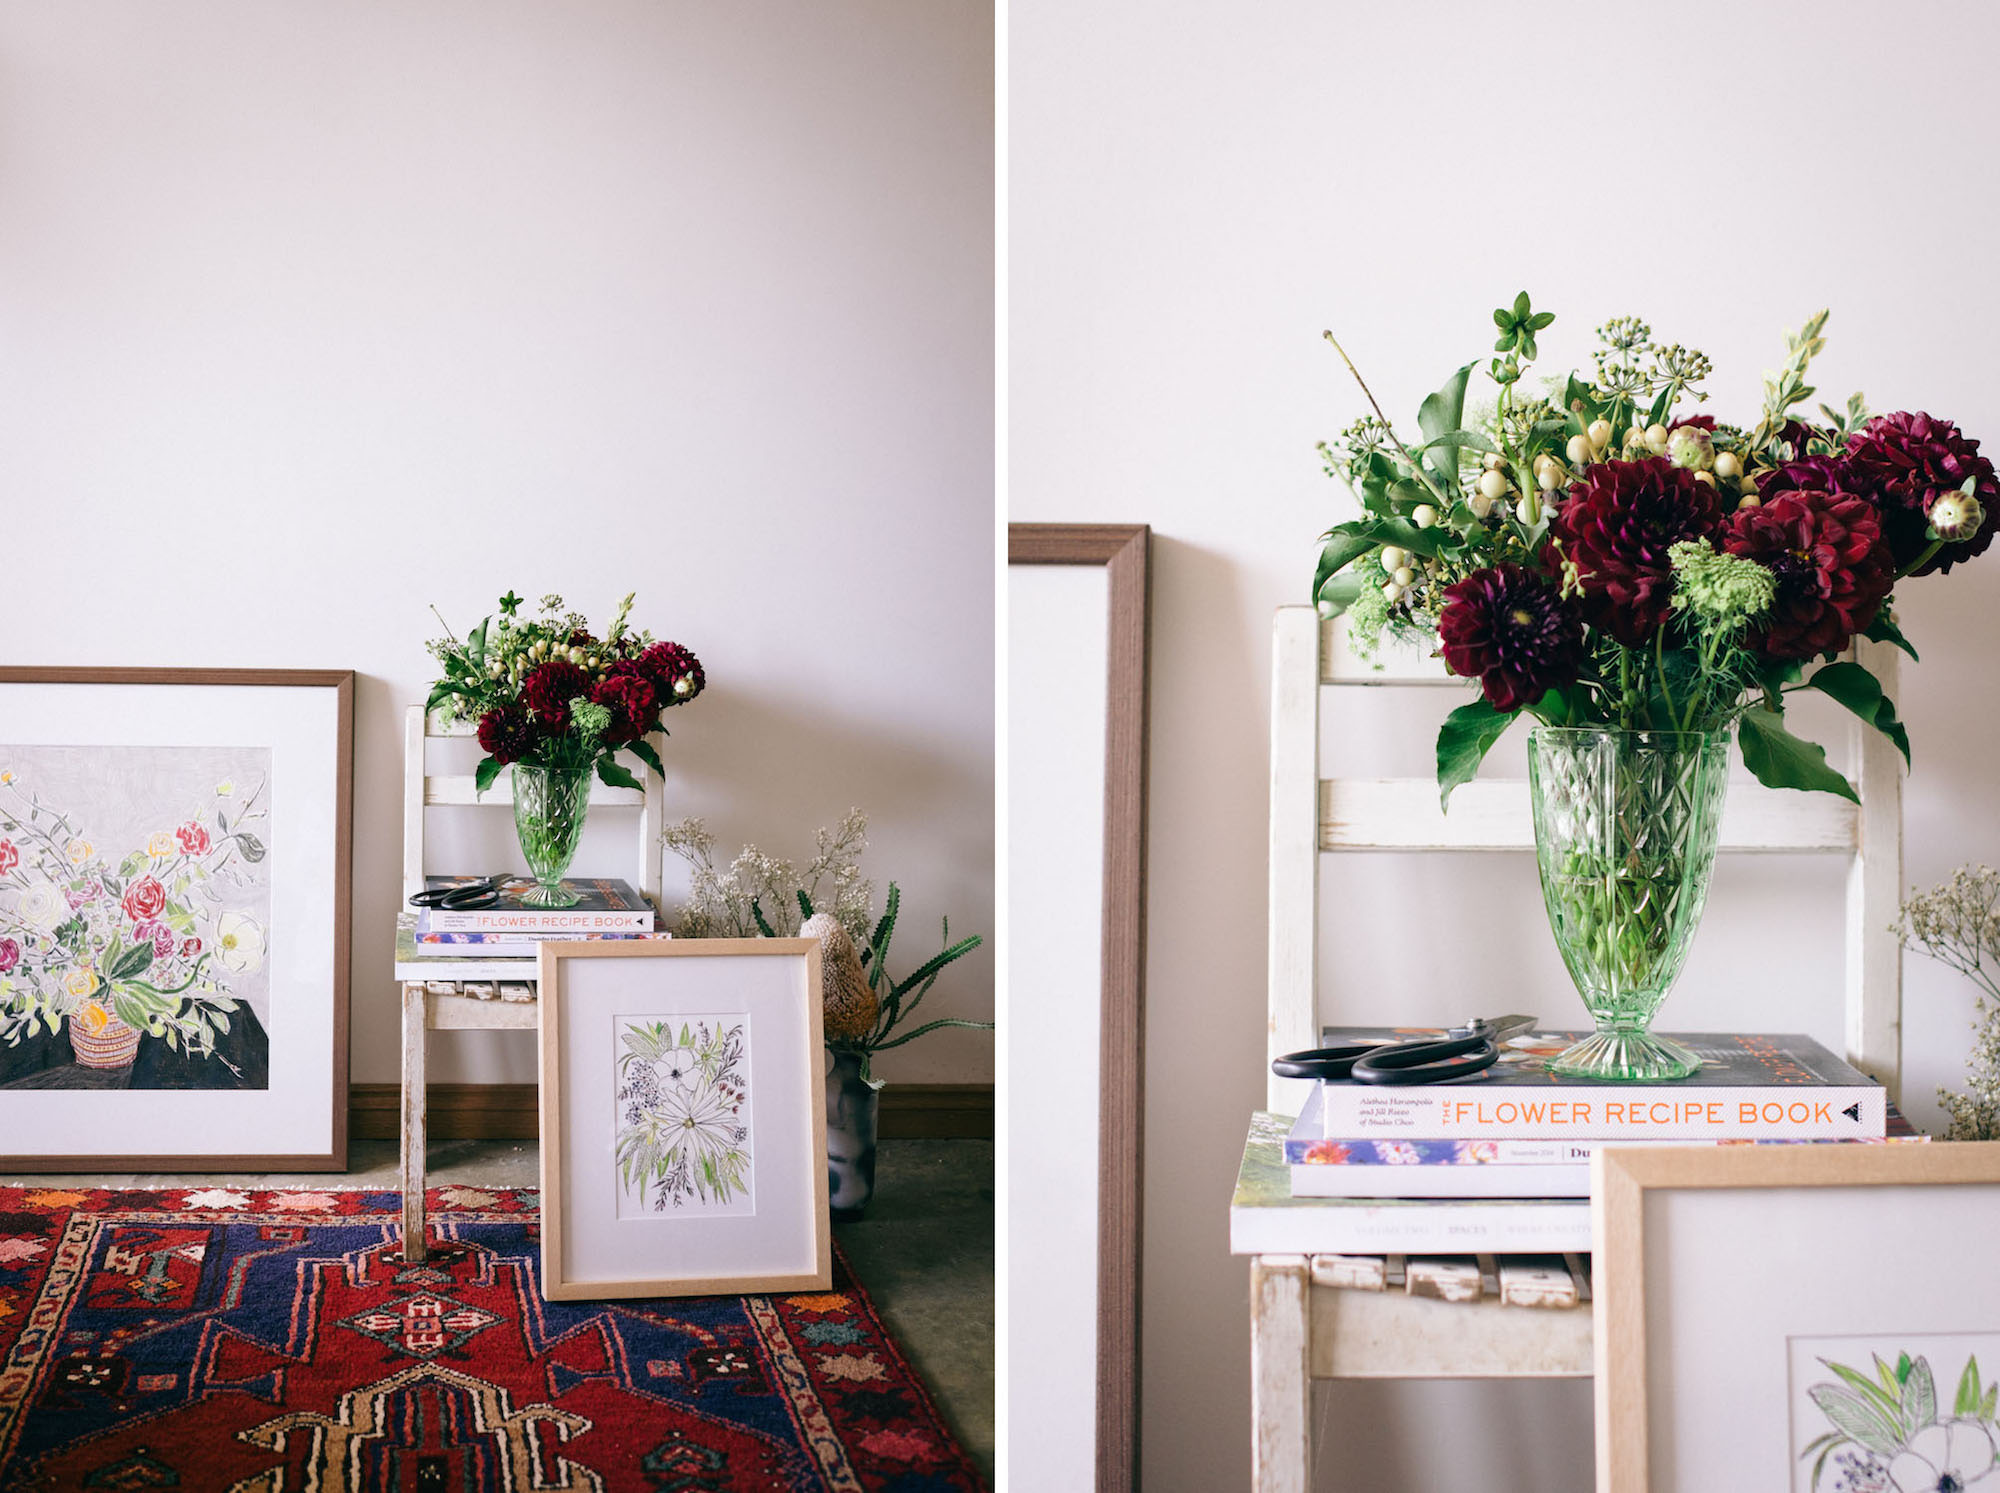 Creative Business Photography Ashleigh Perrella Artist Florist 4